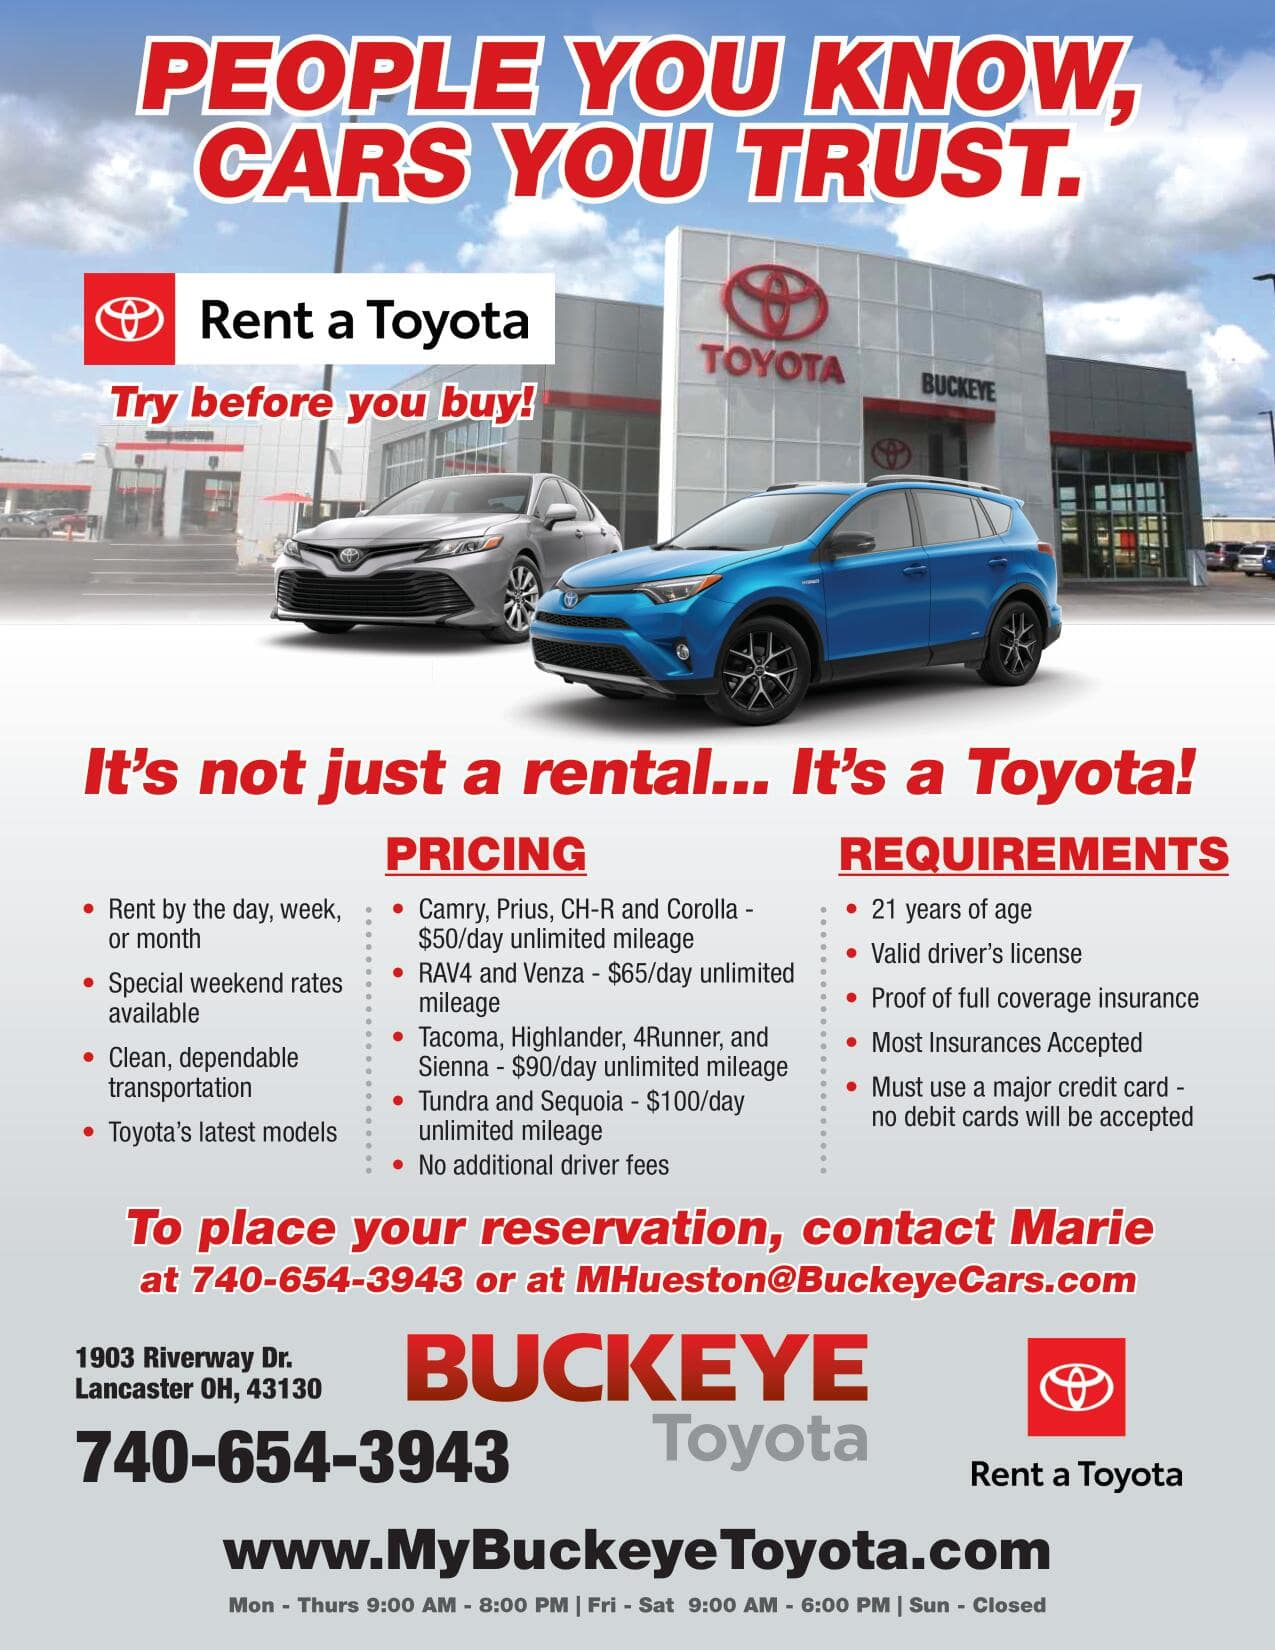 CLICK HERE FOR RATES AND CONTACT INFORMATION ON RENTING A VEHICLE